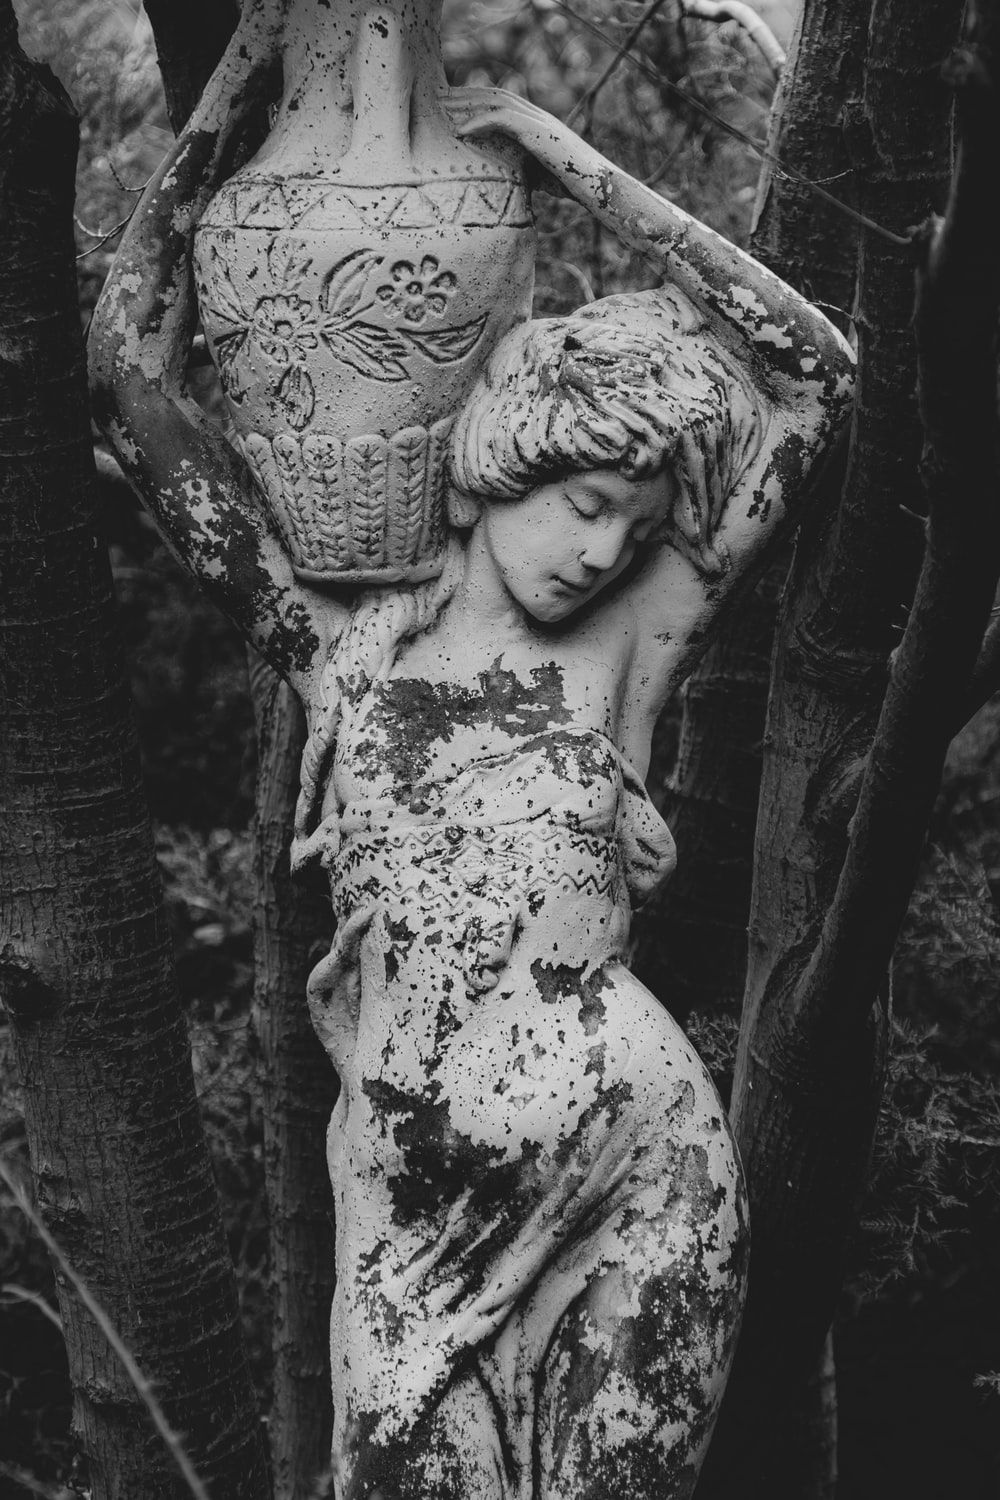 woman with floral headdress statue